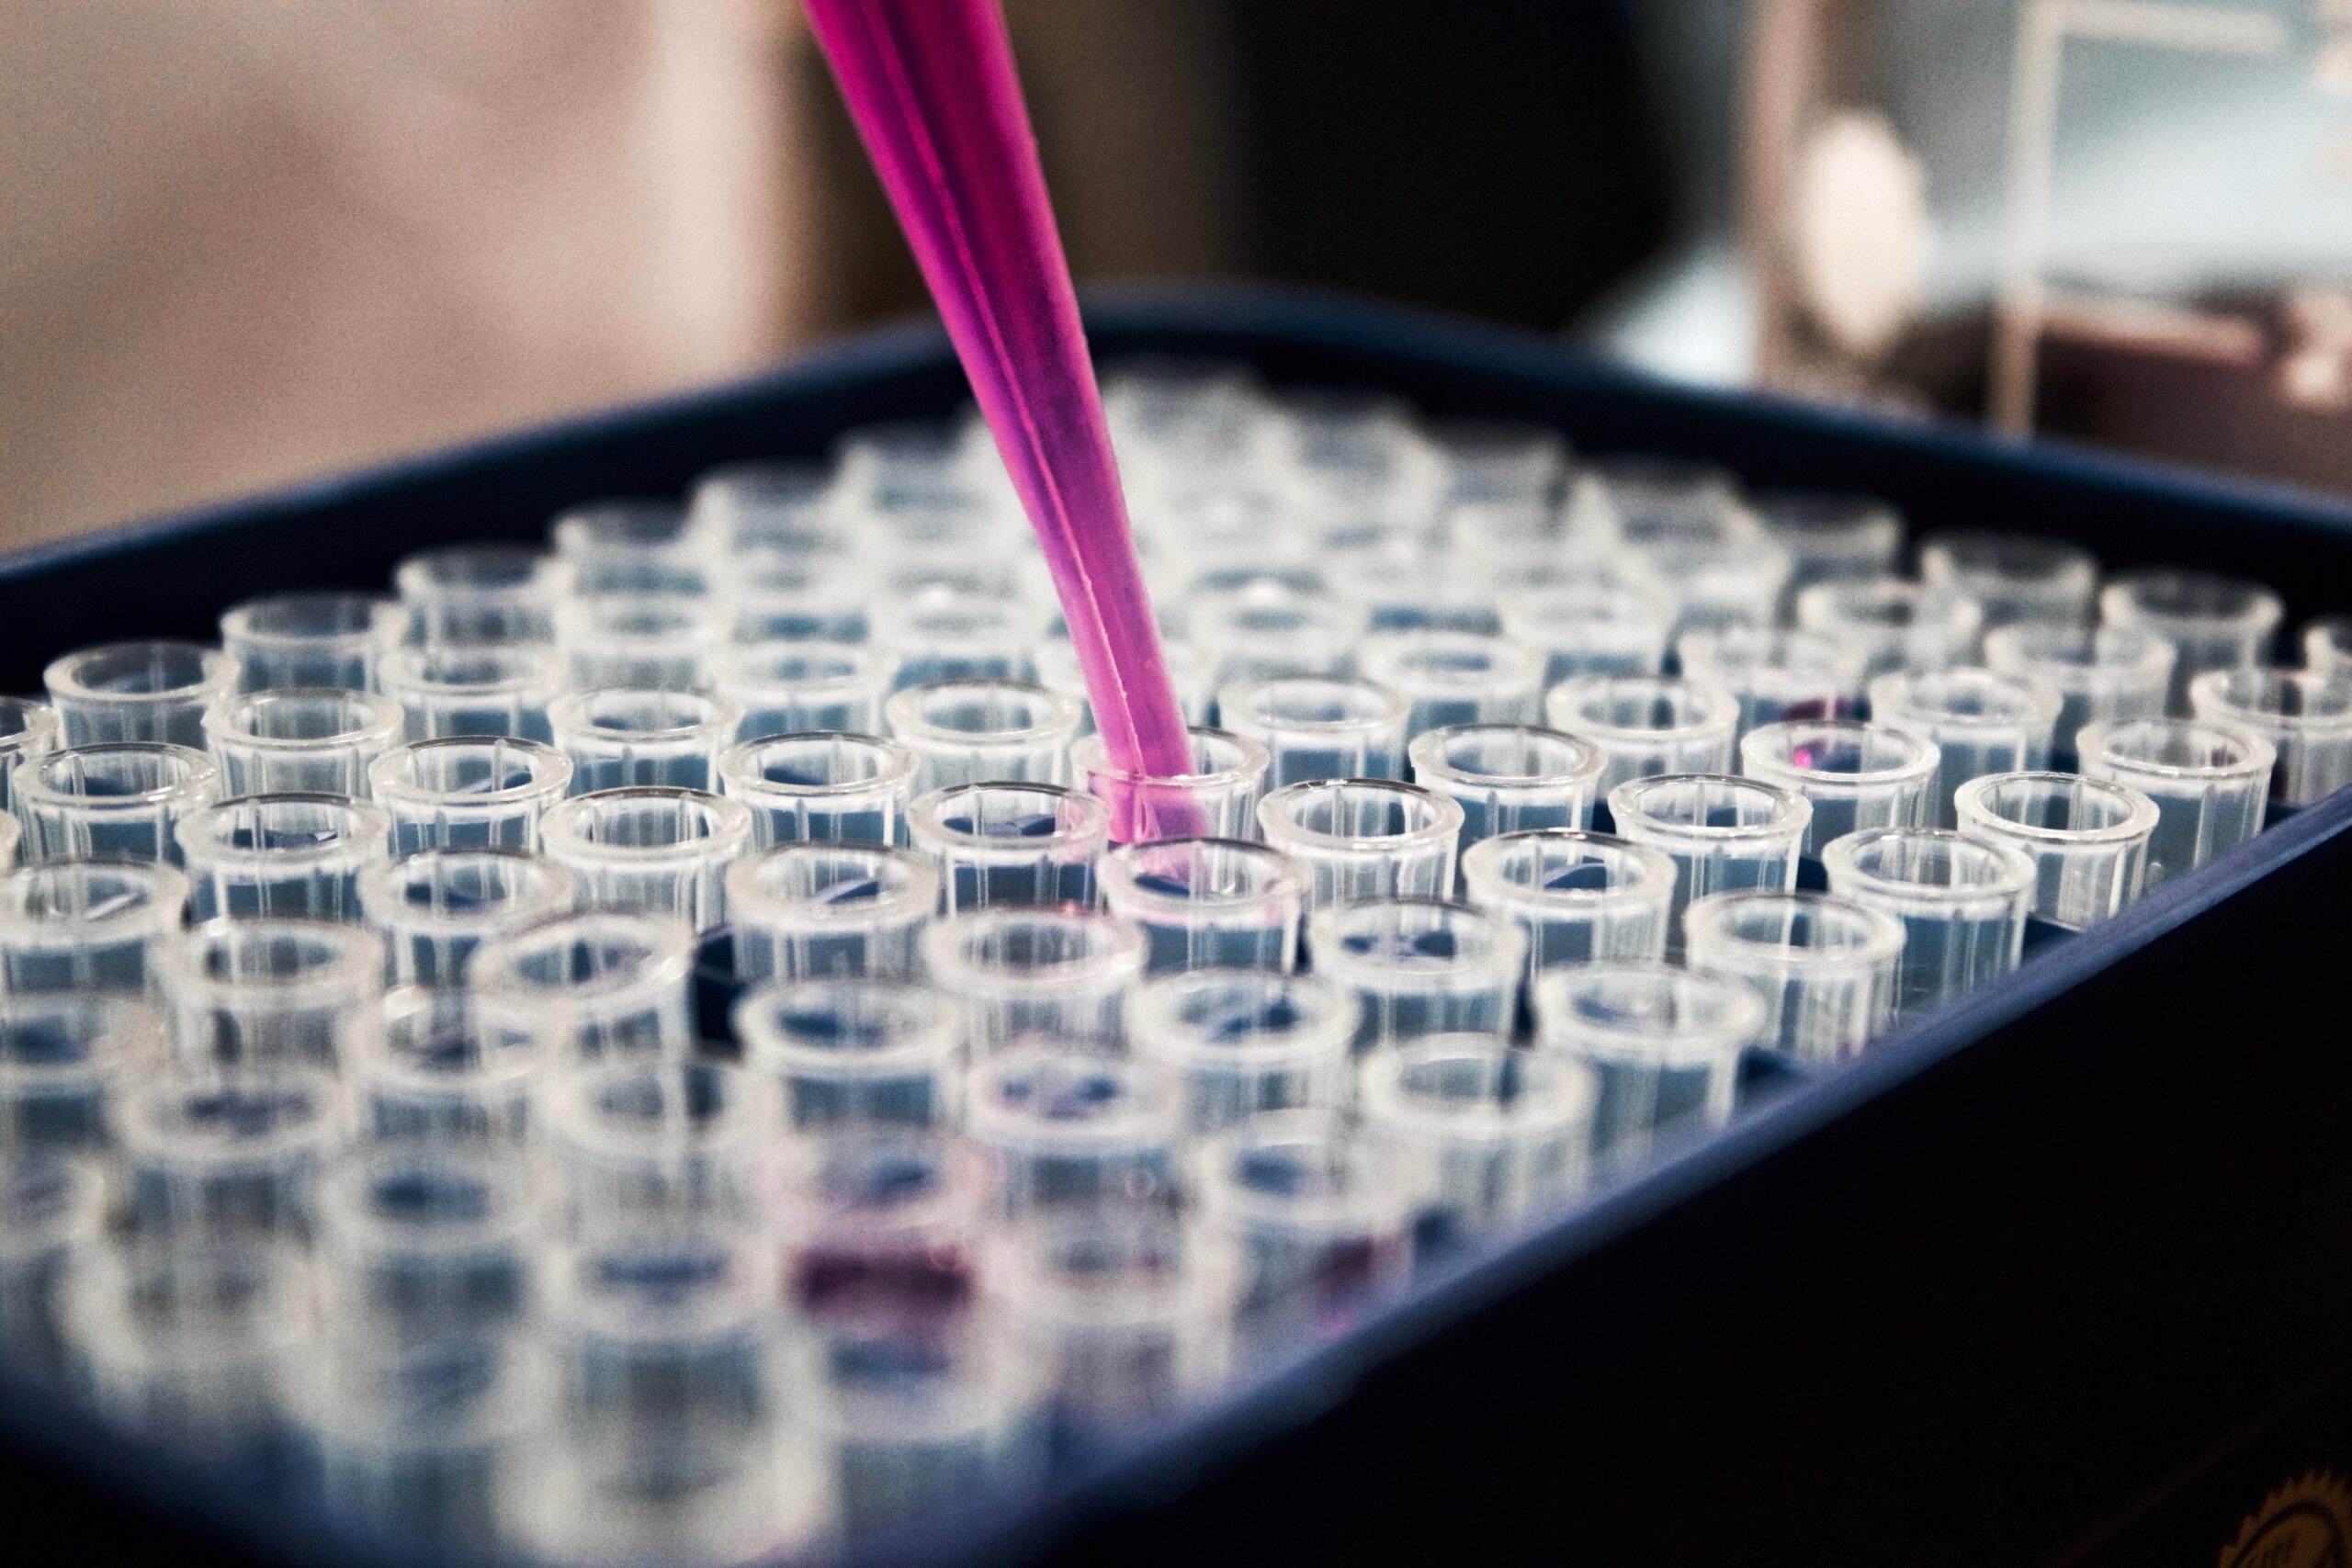 Test tubes being used within a lab